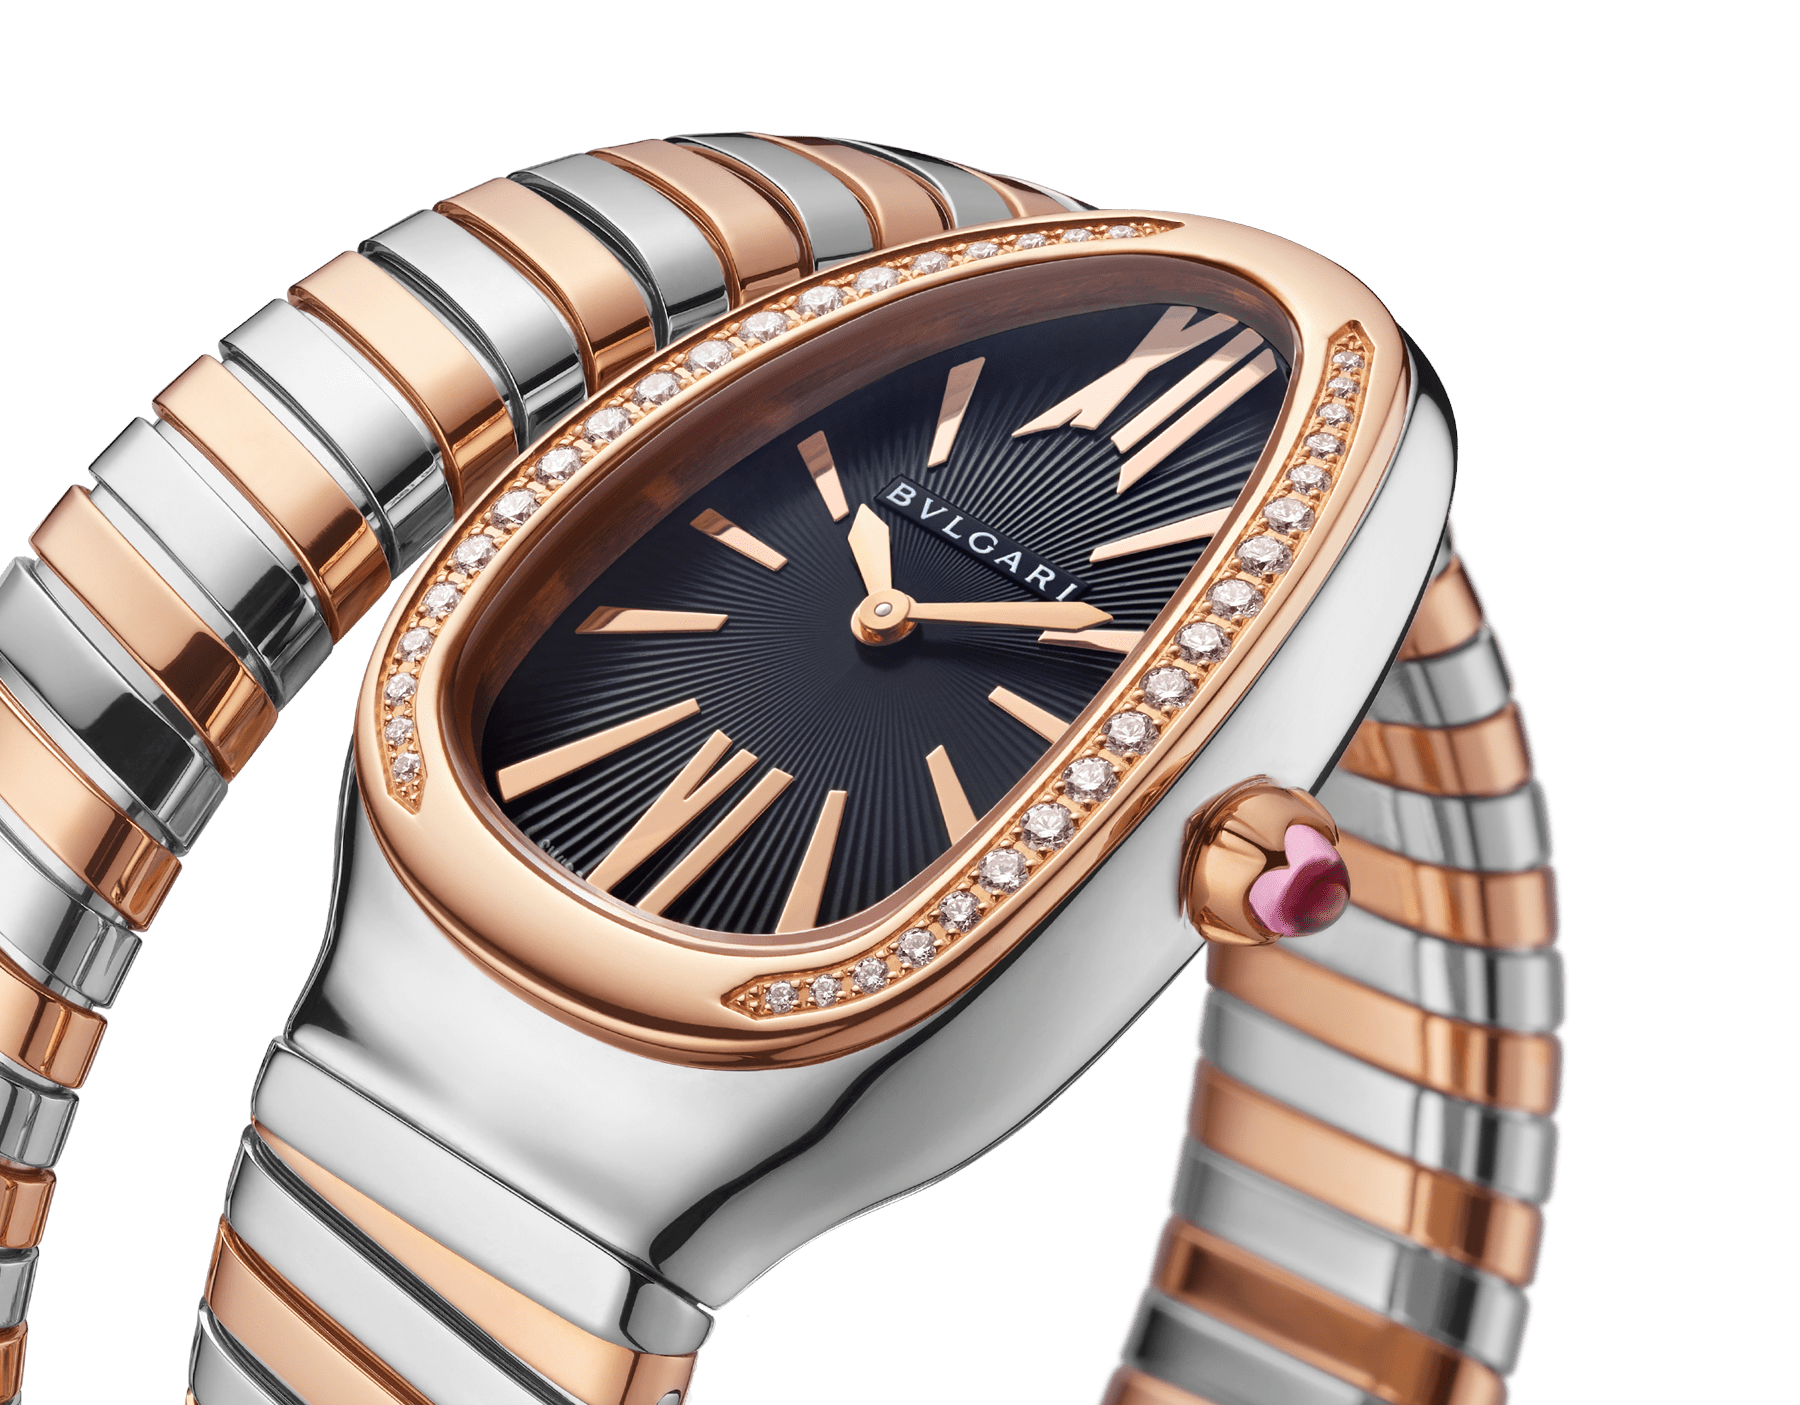 Serpenti Tubogas single spiral watch with stainless steel case, 18 kt rose gold bezel set with brilliant cut diamonds, black opaline dial, 18 kt rose gold and stainless steel bracelet. 102098 image 3